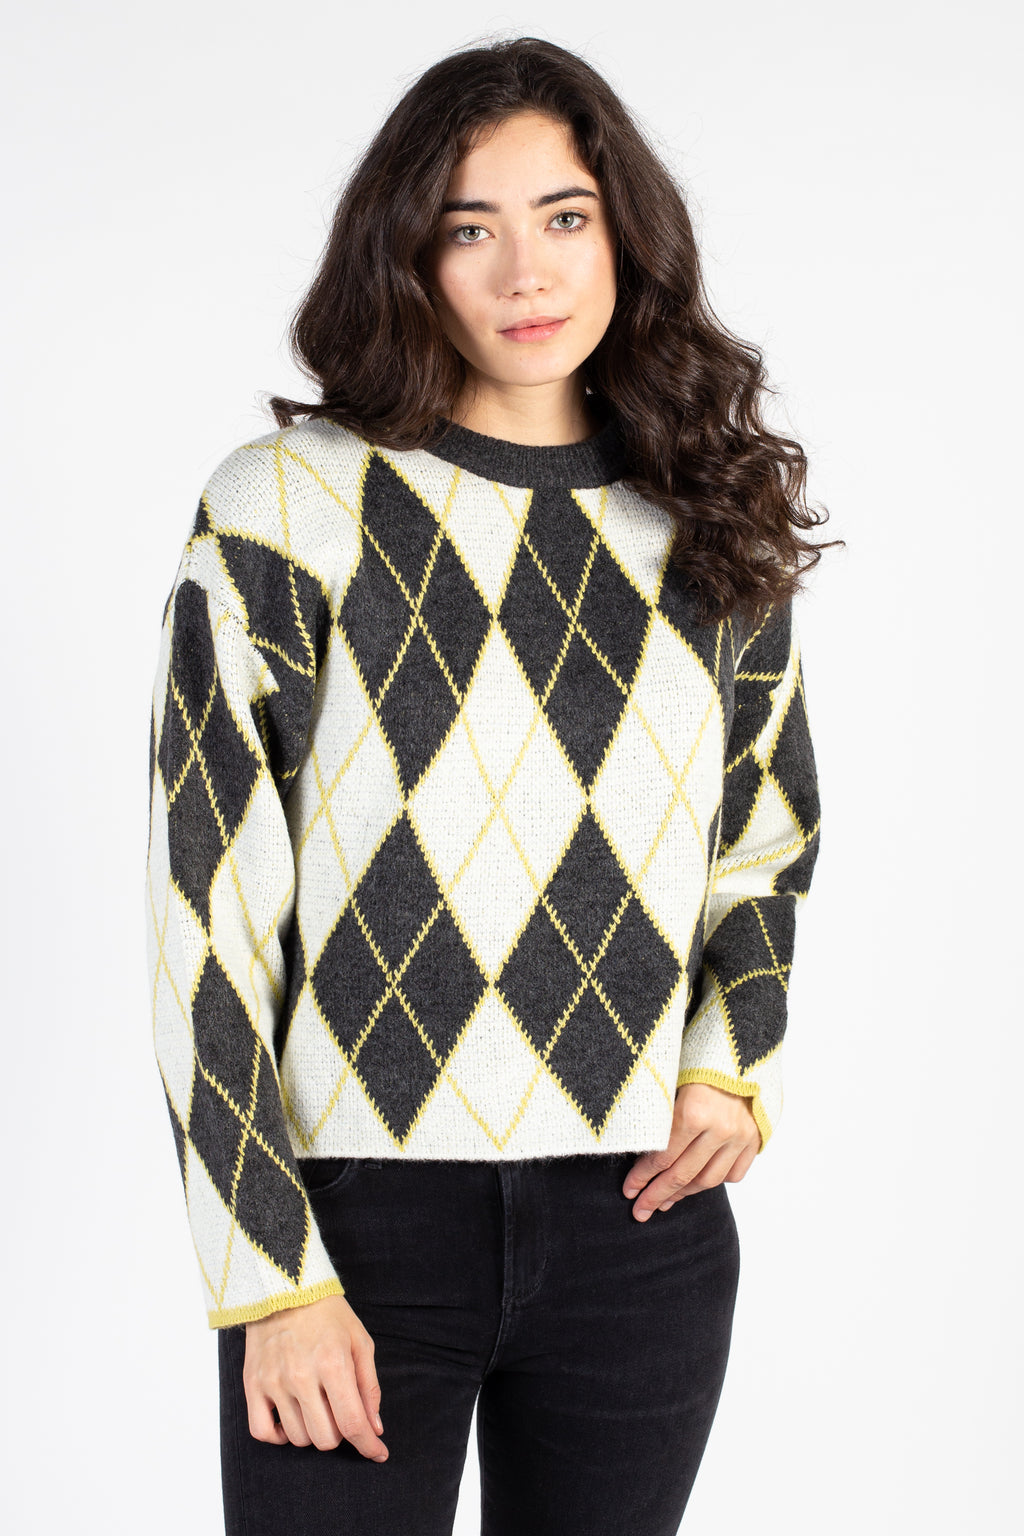 90's Argyle Knit Sweater